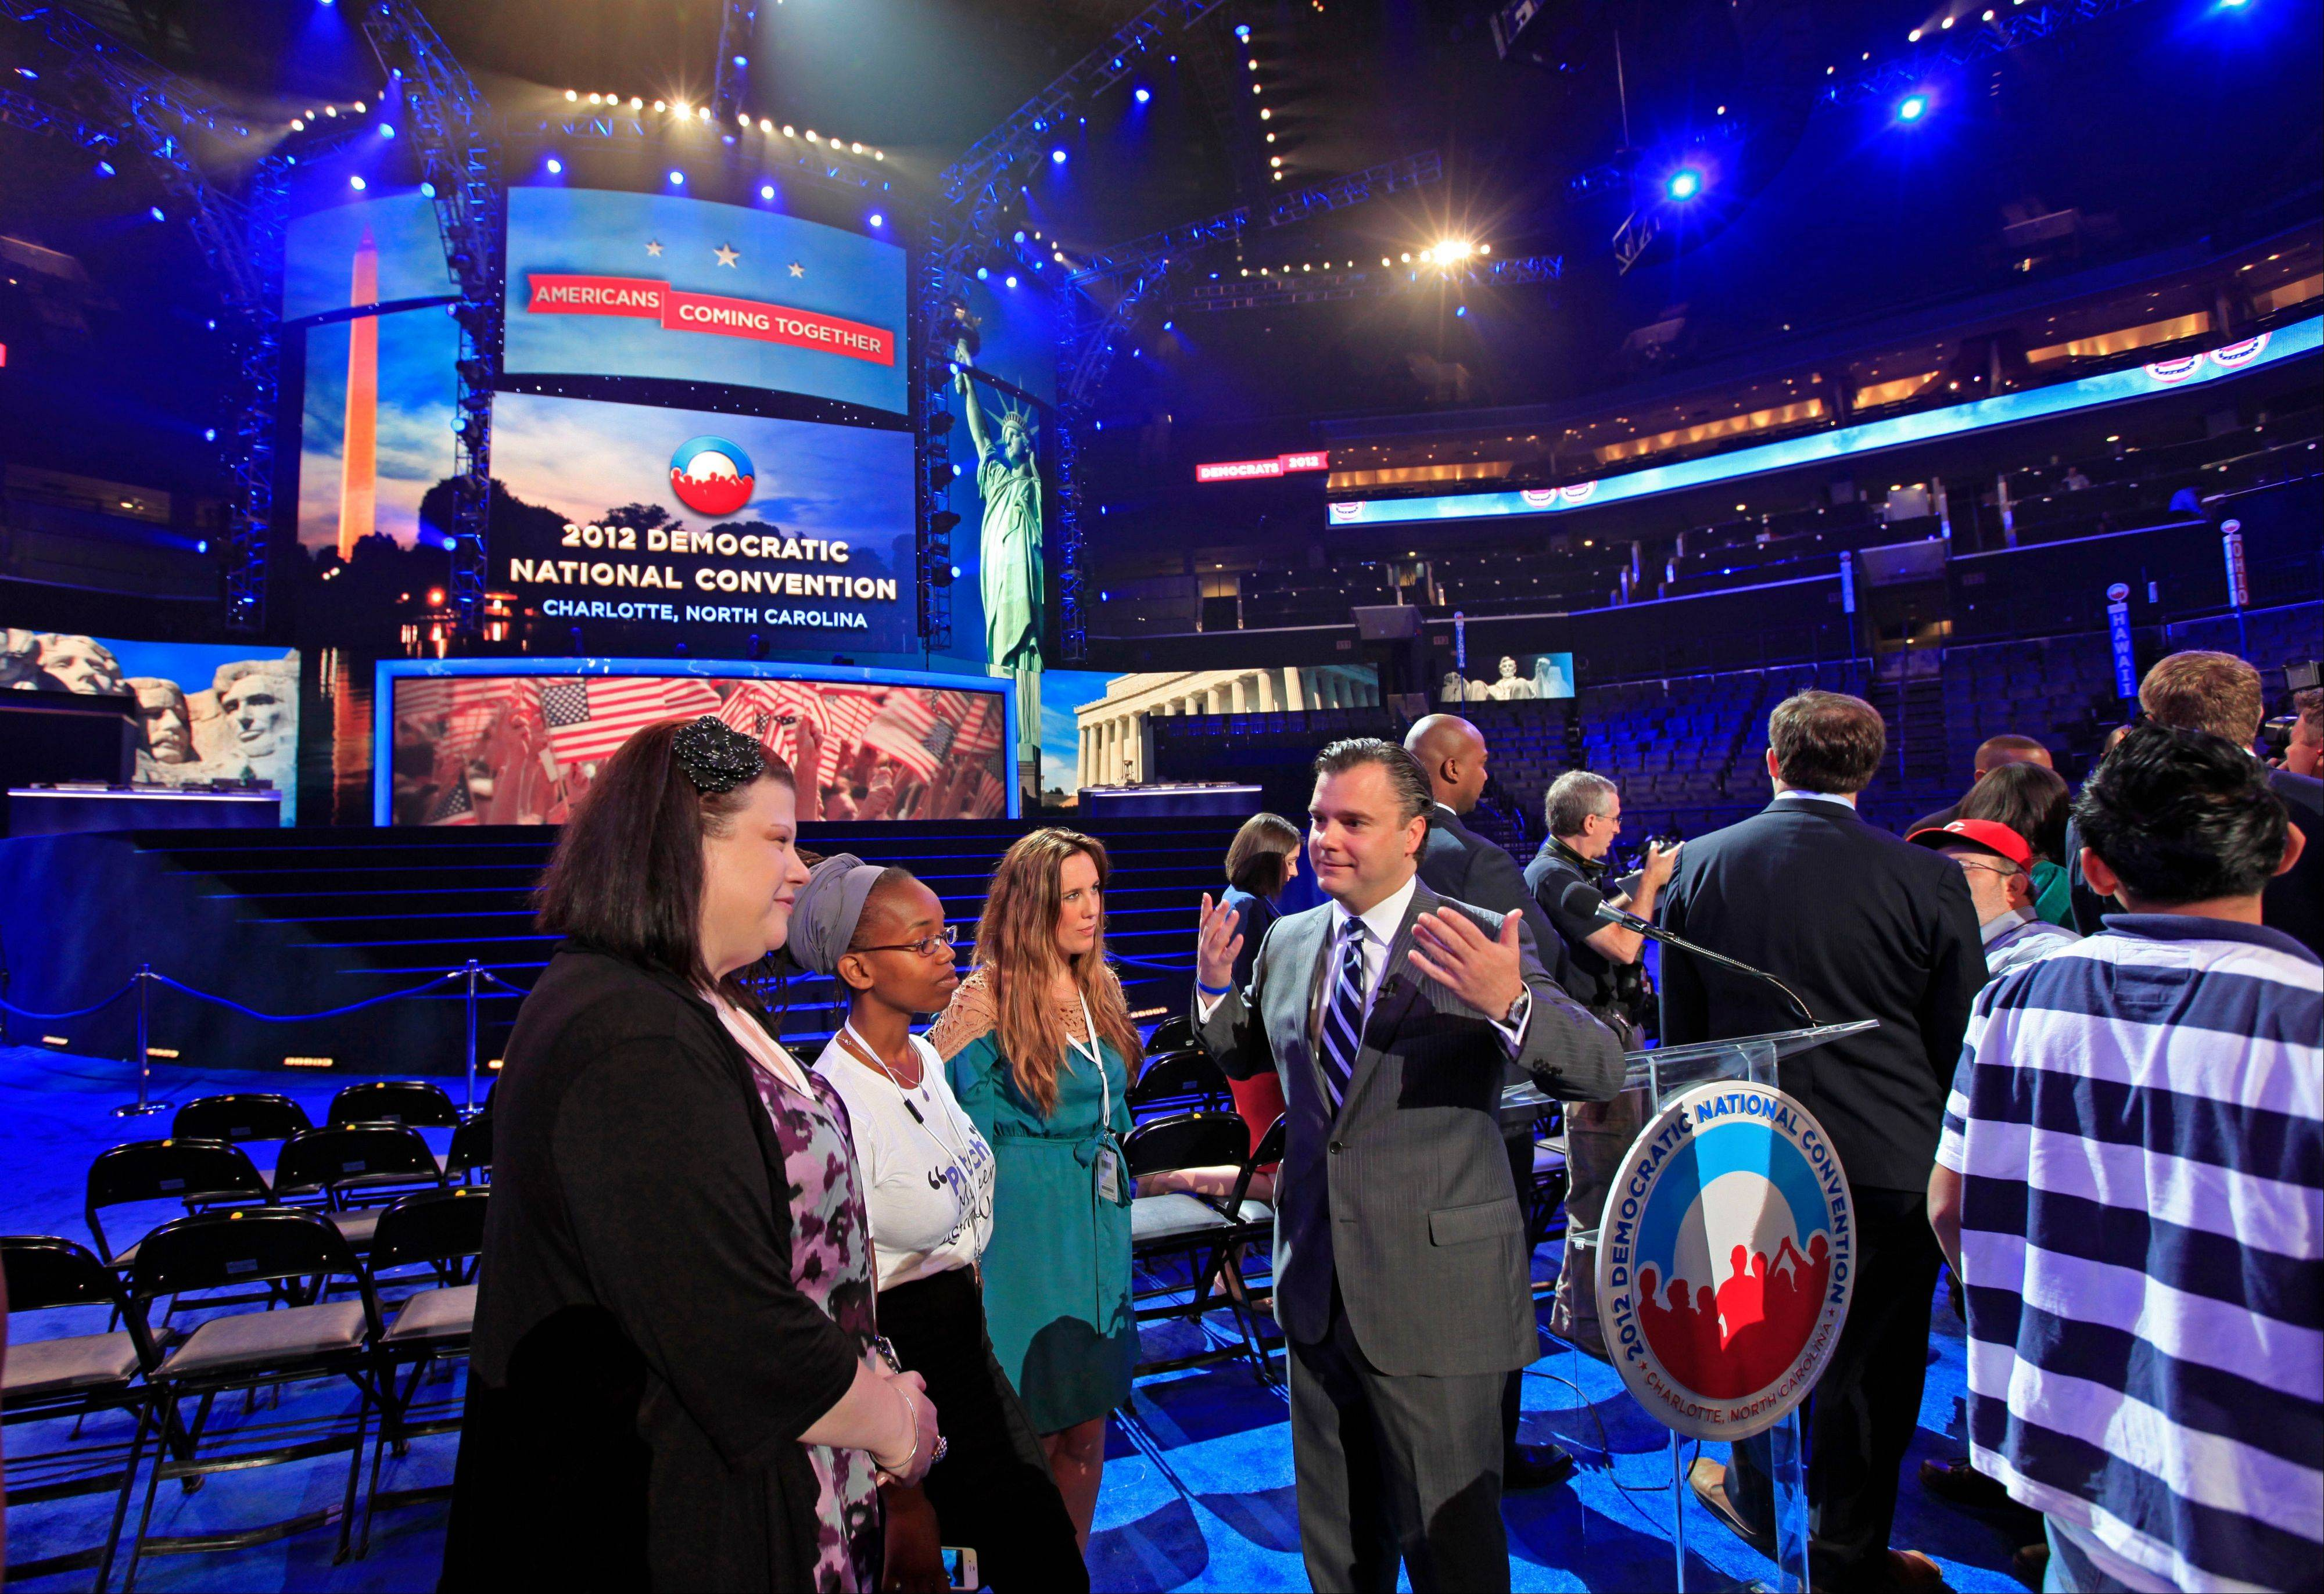 DNCC CEO Steve Kerrigan, center, talks with guests near the main stage during the public unveiling of Democratic National Convention's facilities at Time Warner Arena in Charlotte, N.C., Friday, Aug. 31, 2012.